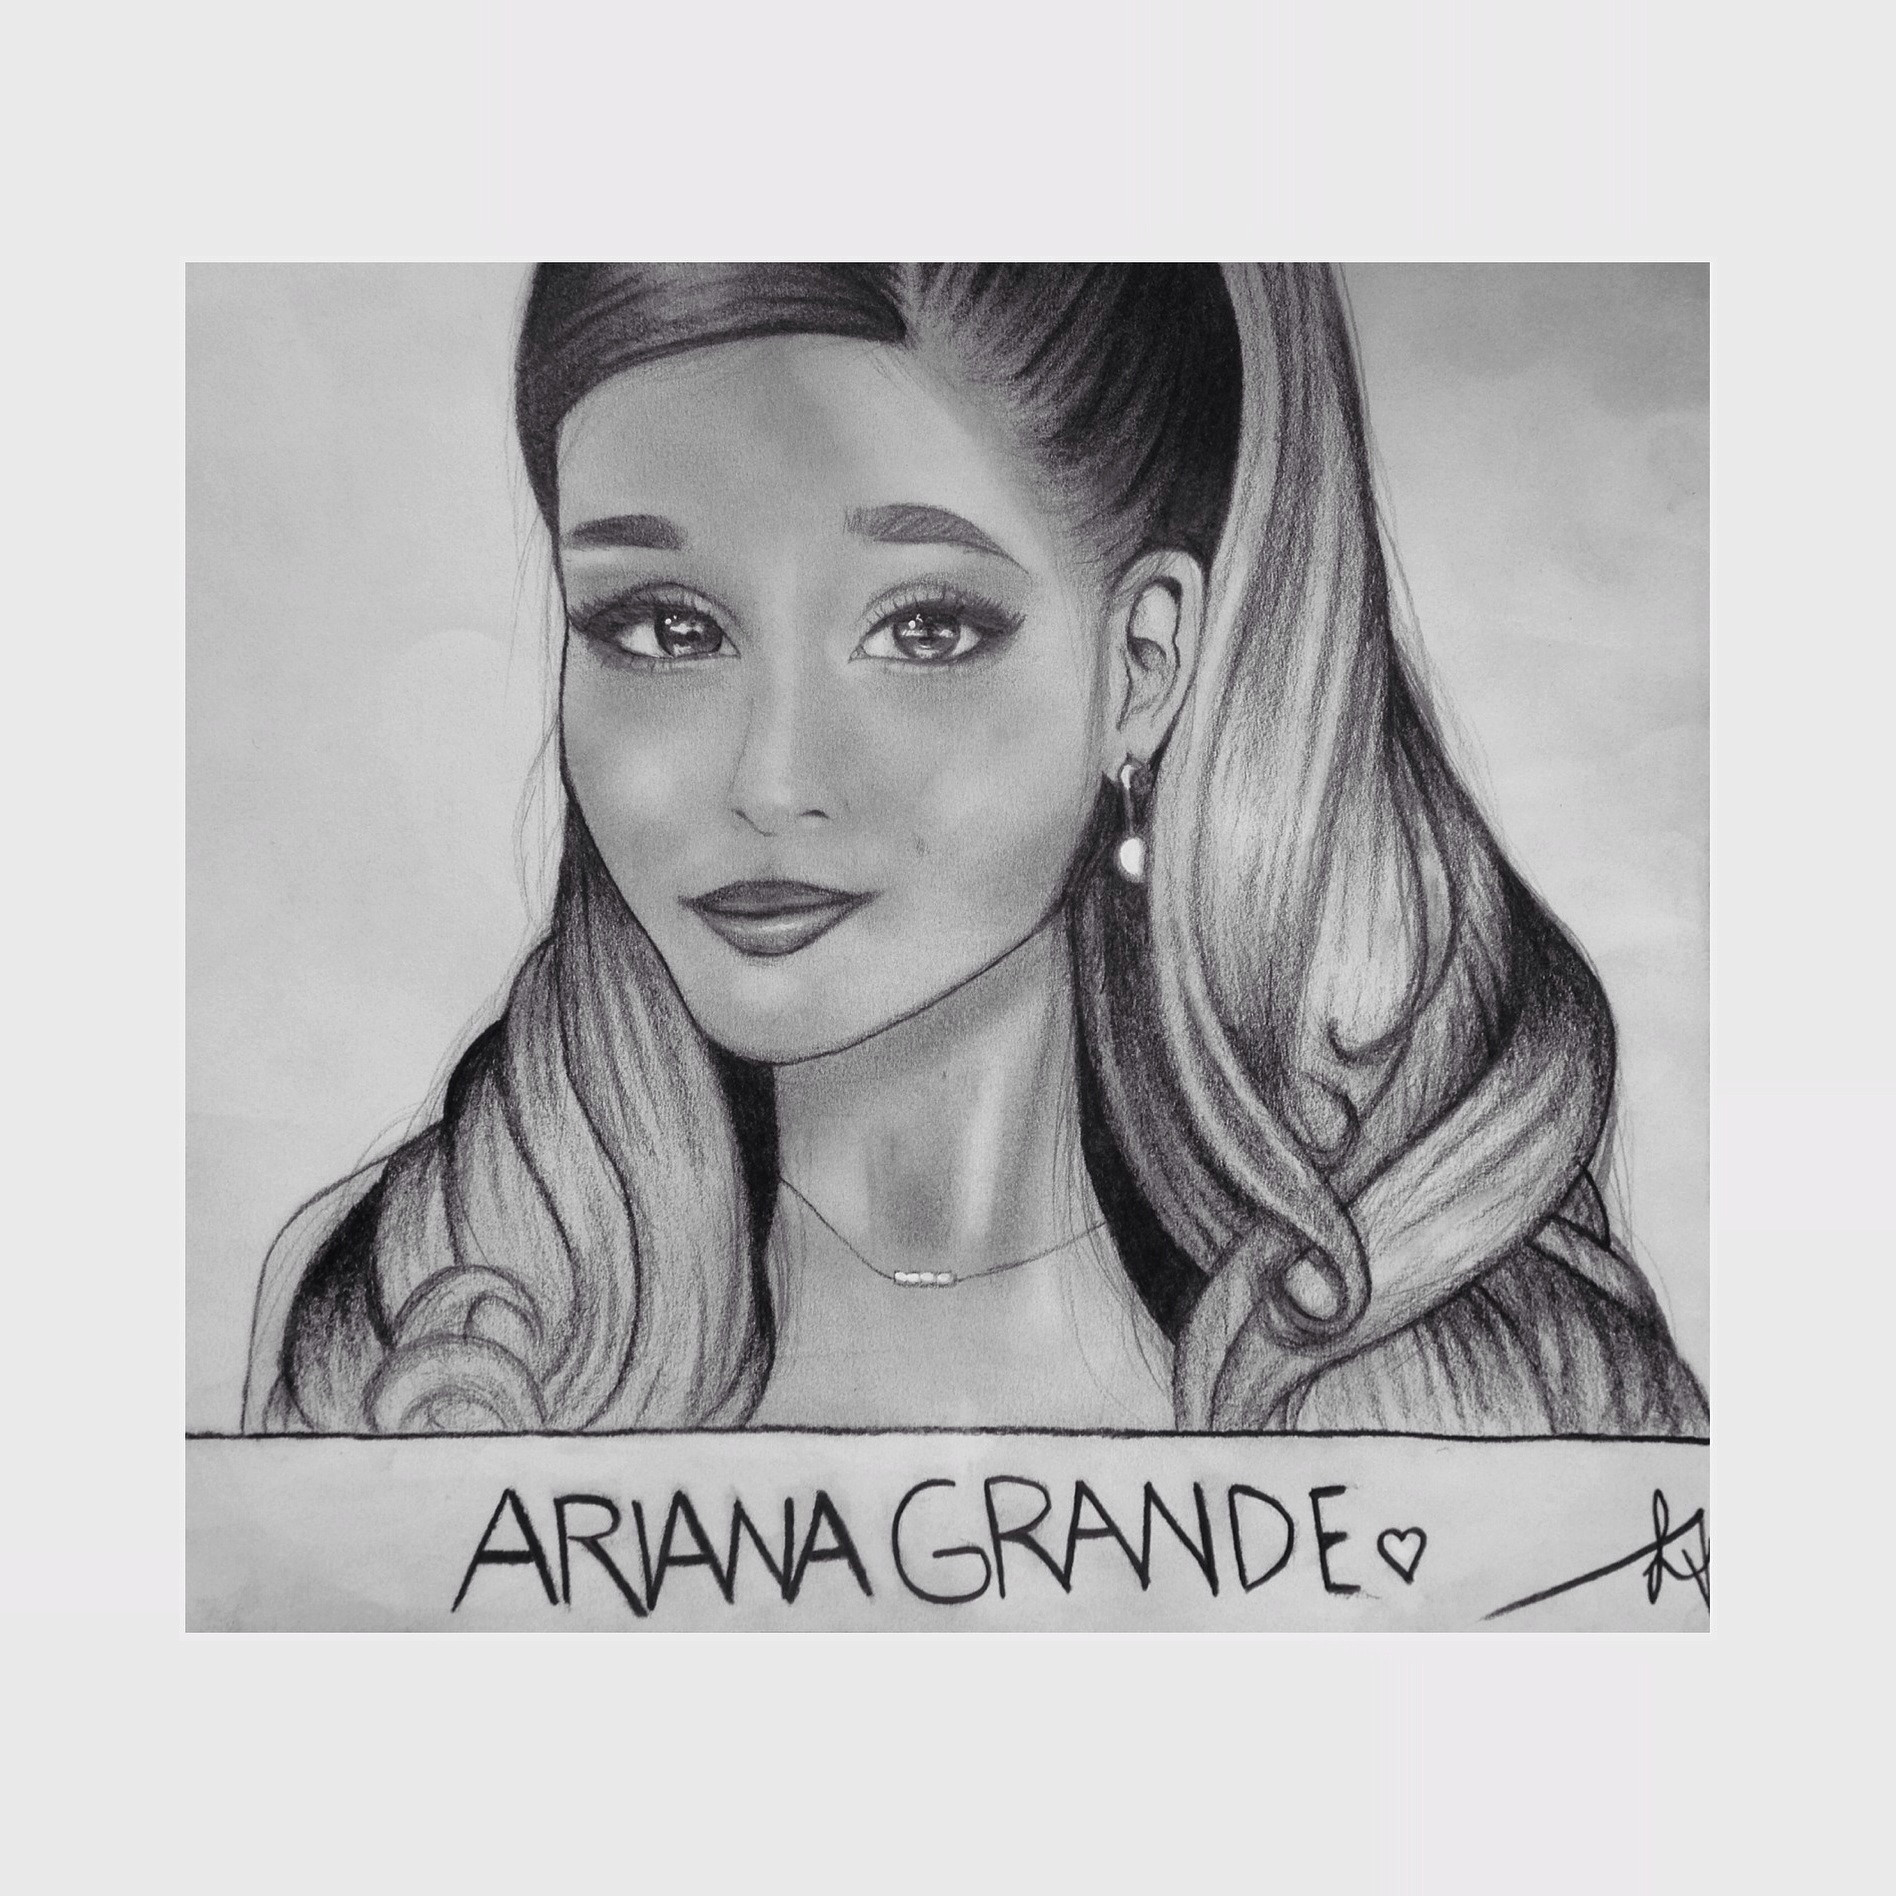 Download Ariana Grande Thank You: Ariana Grande By Aizlynne On DeviantArt